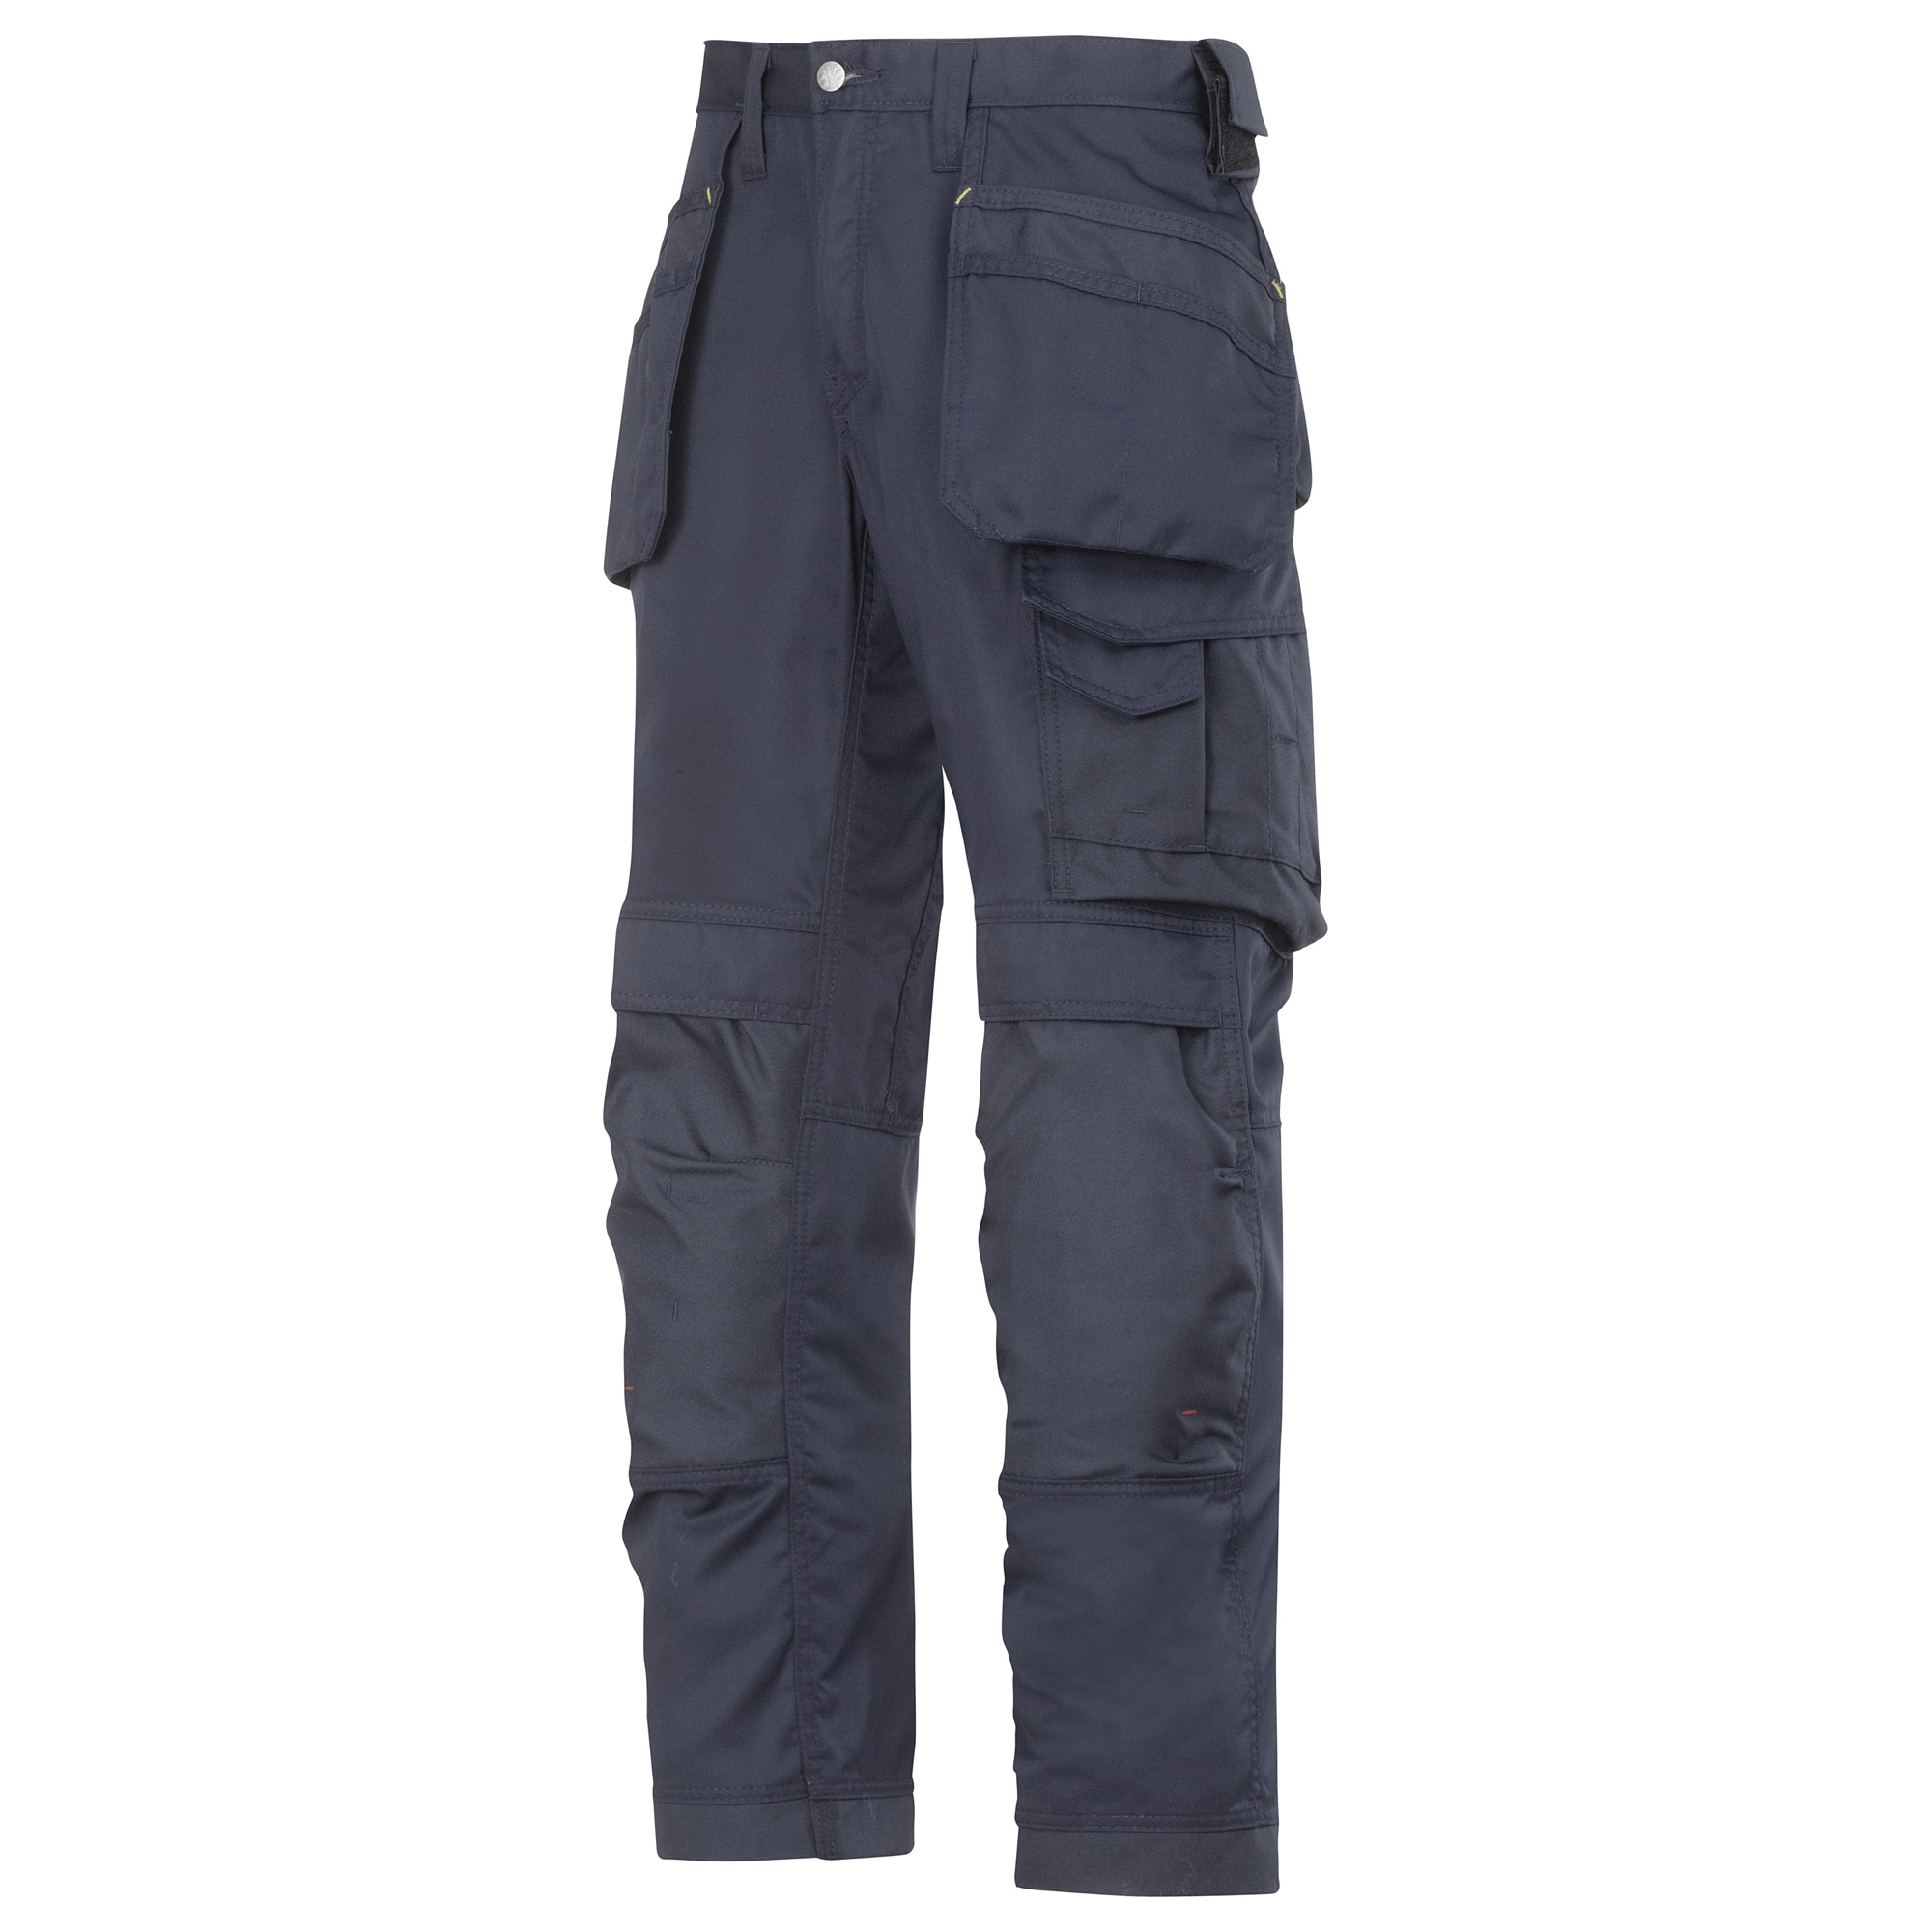 Snickers Mens Cooltwill Workwear Trousers / Pants (35R) (Navy)